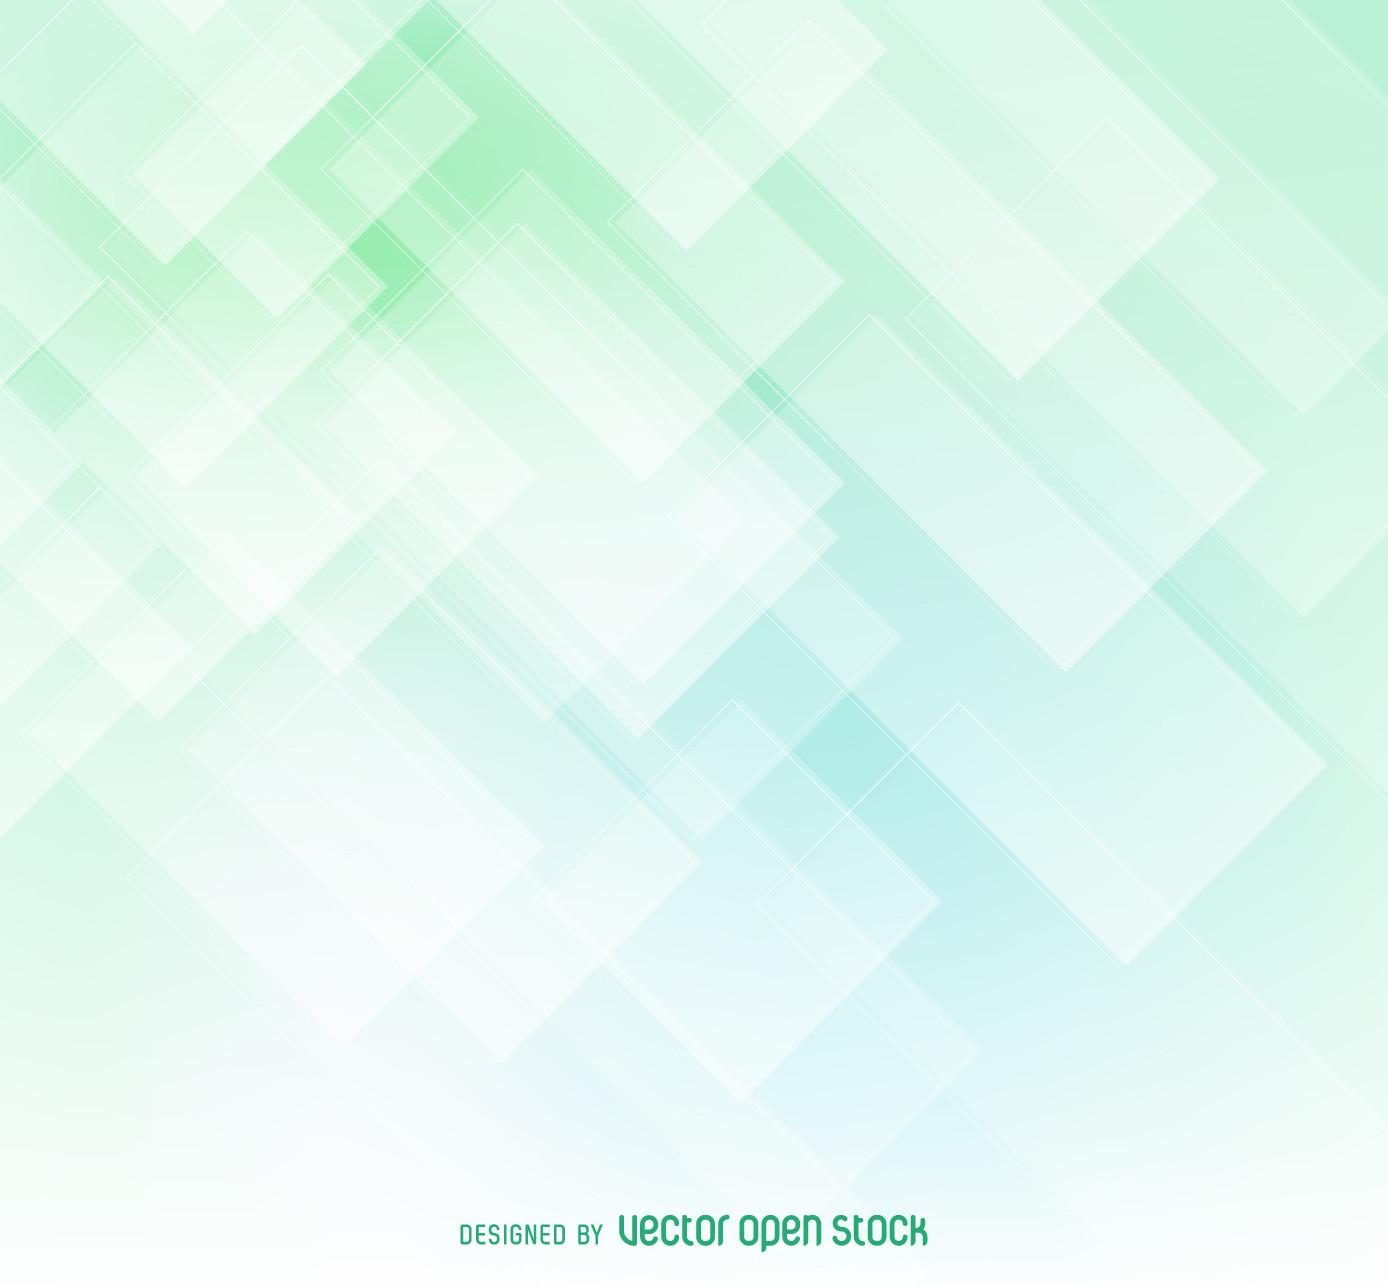 Geometric Soft Green Abstract Backdrop Vector